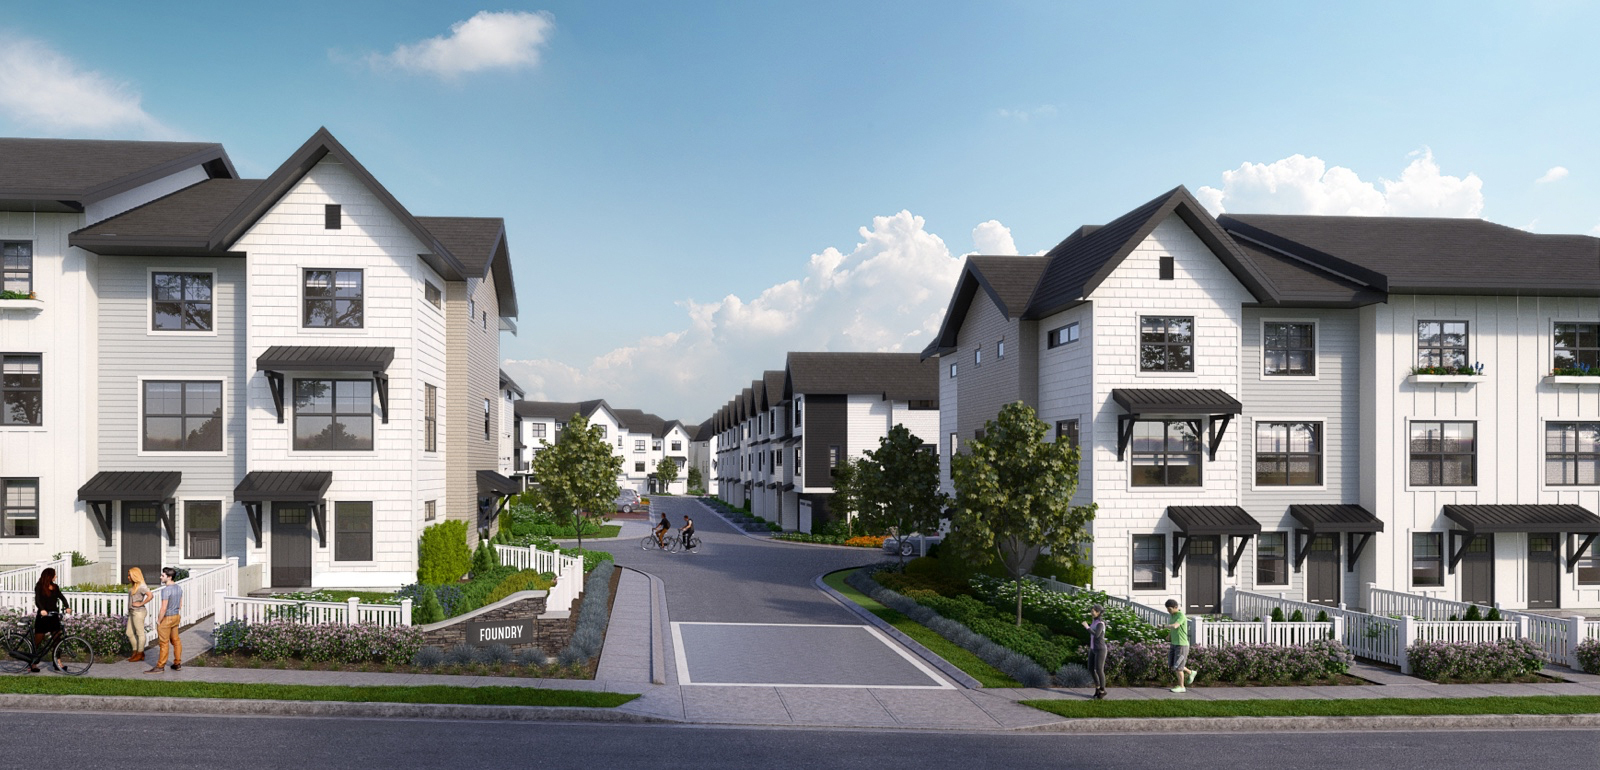 A Collection Of 106 Modern Artisan Townhomes Set On Five Acres In Langley West.